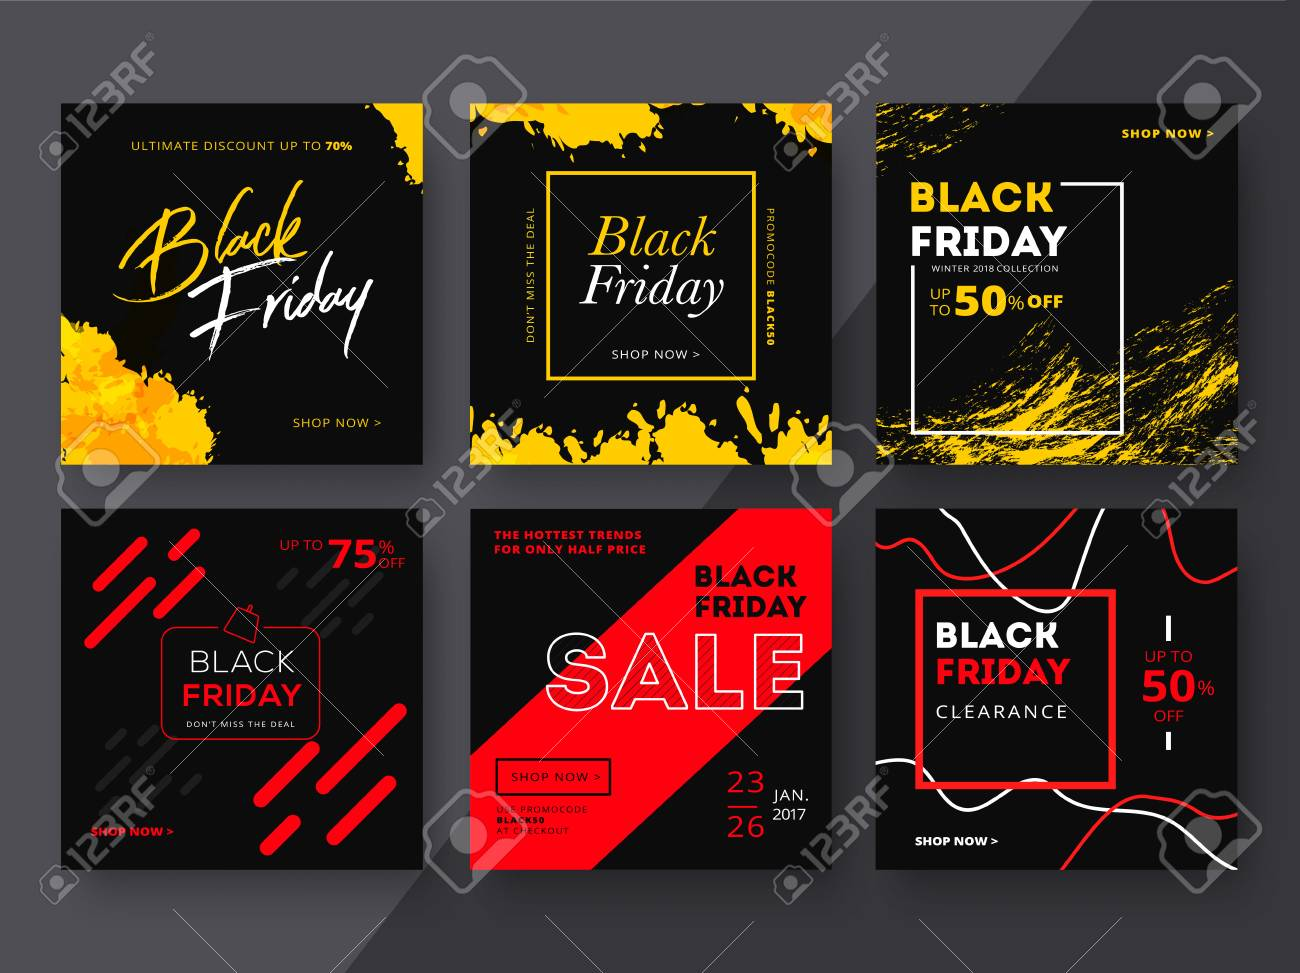 Modern Promotion Square Web Banner For Social Media Mobile Apps Royalty Free Cliparts Vectors And Stock Illustration Image 88596436